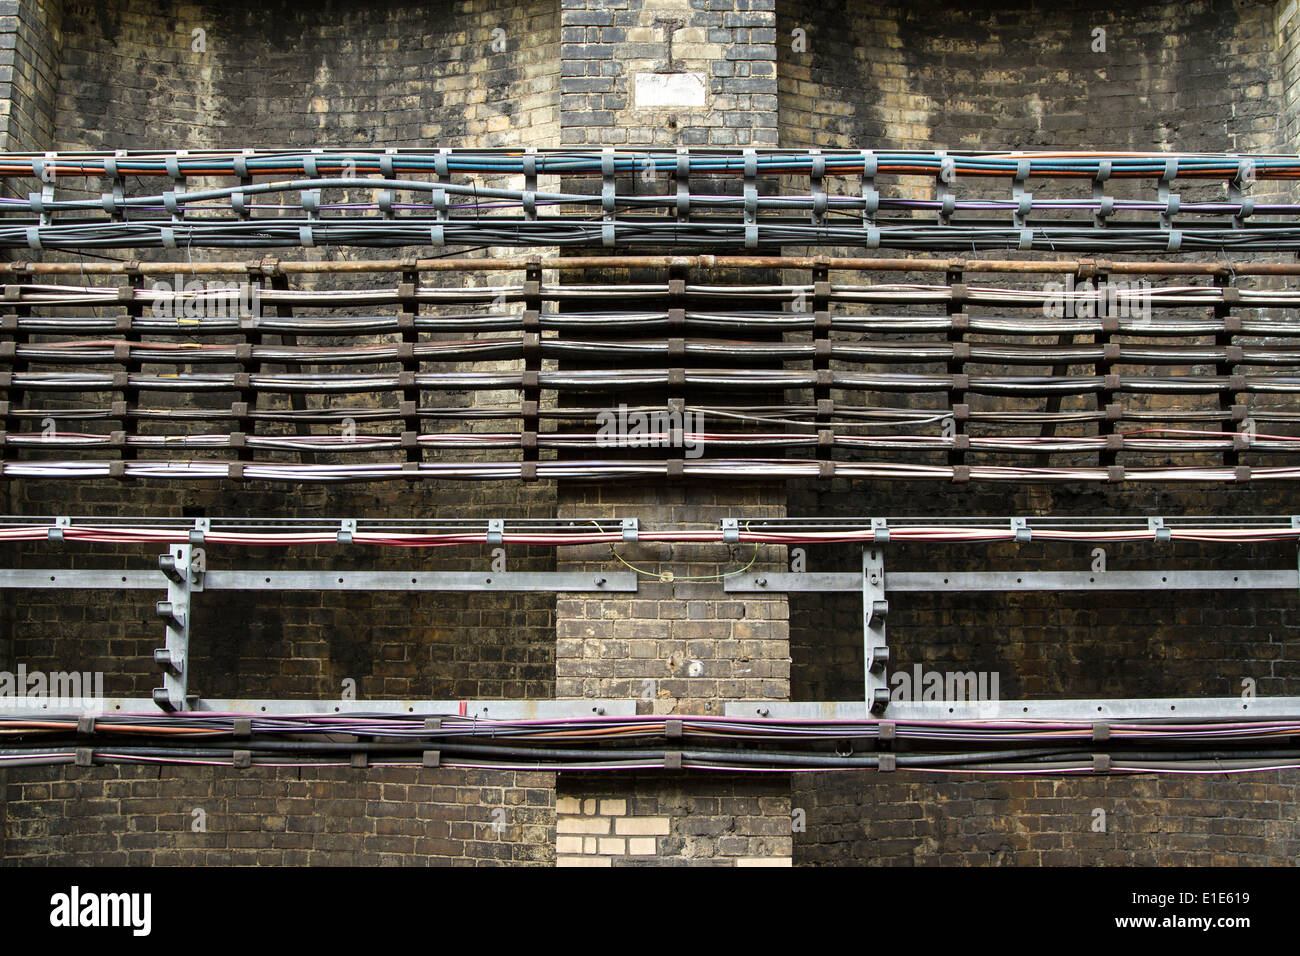 Underground Cable Stock Photos Images Alamy Wiring Code Canada London Wires